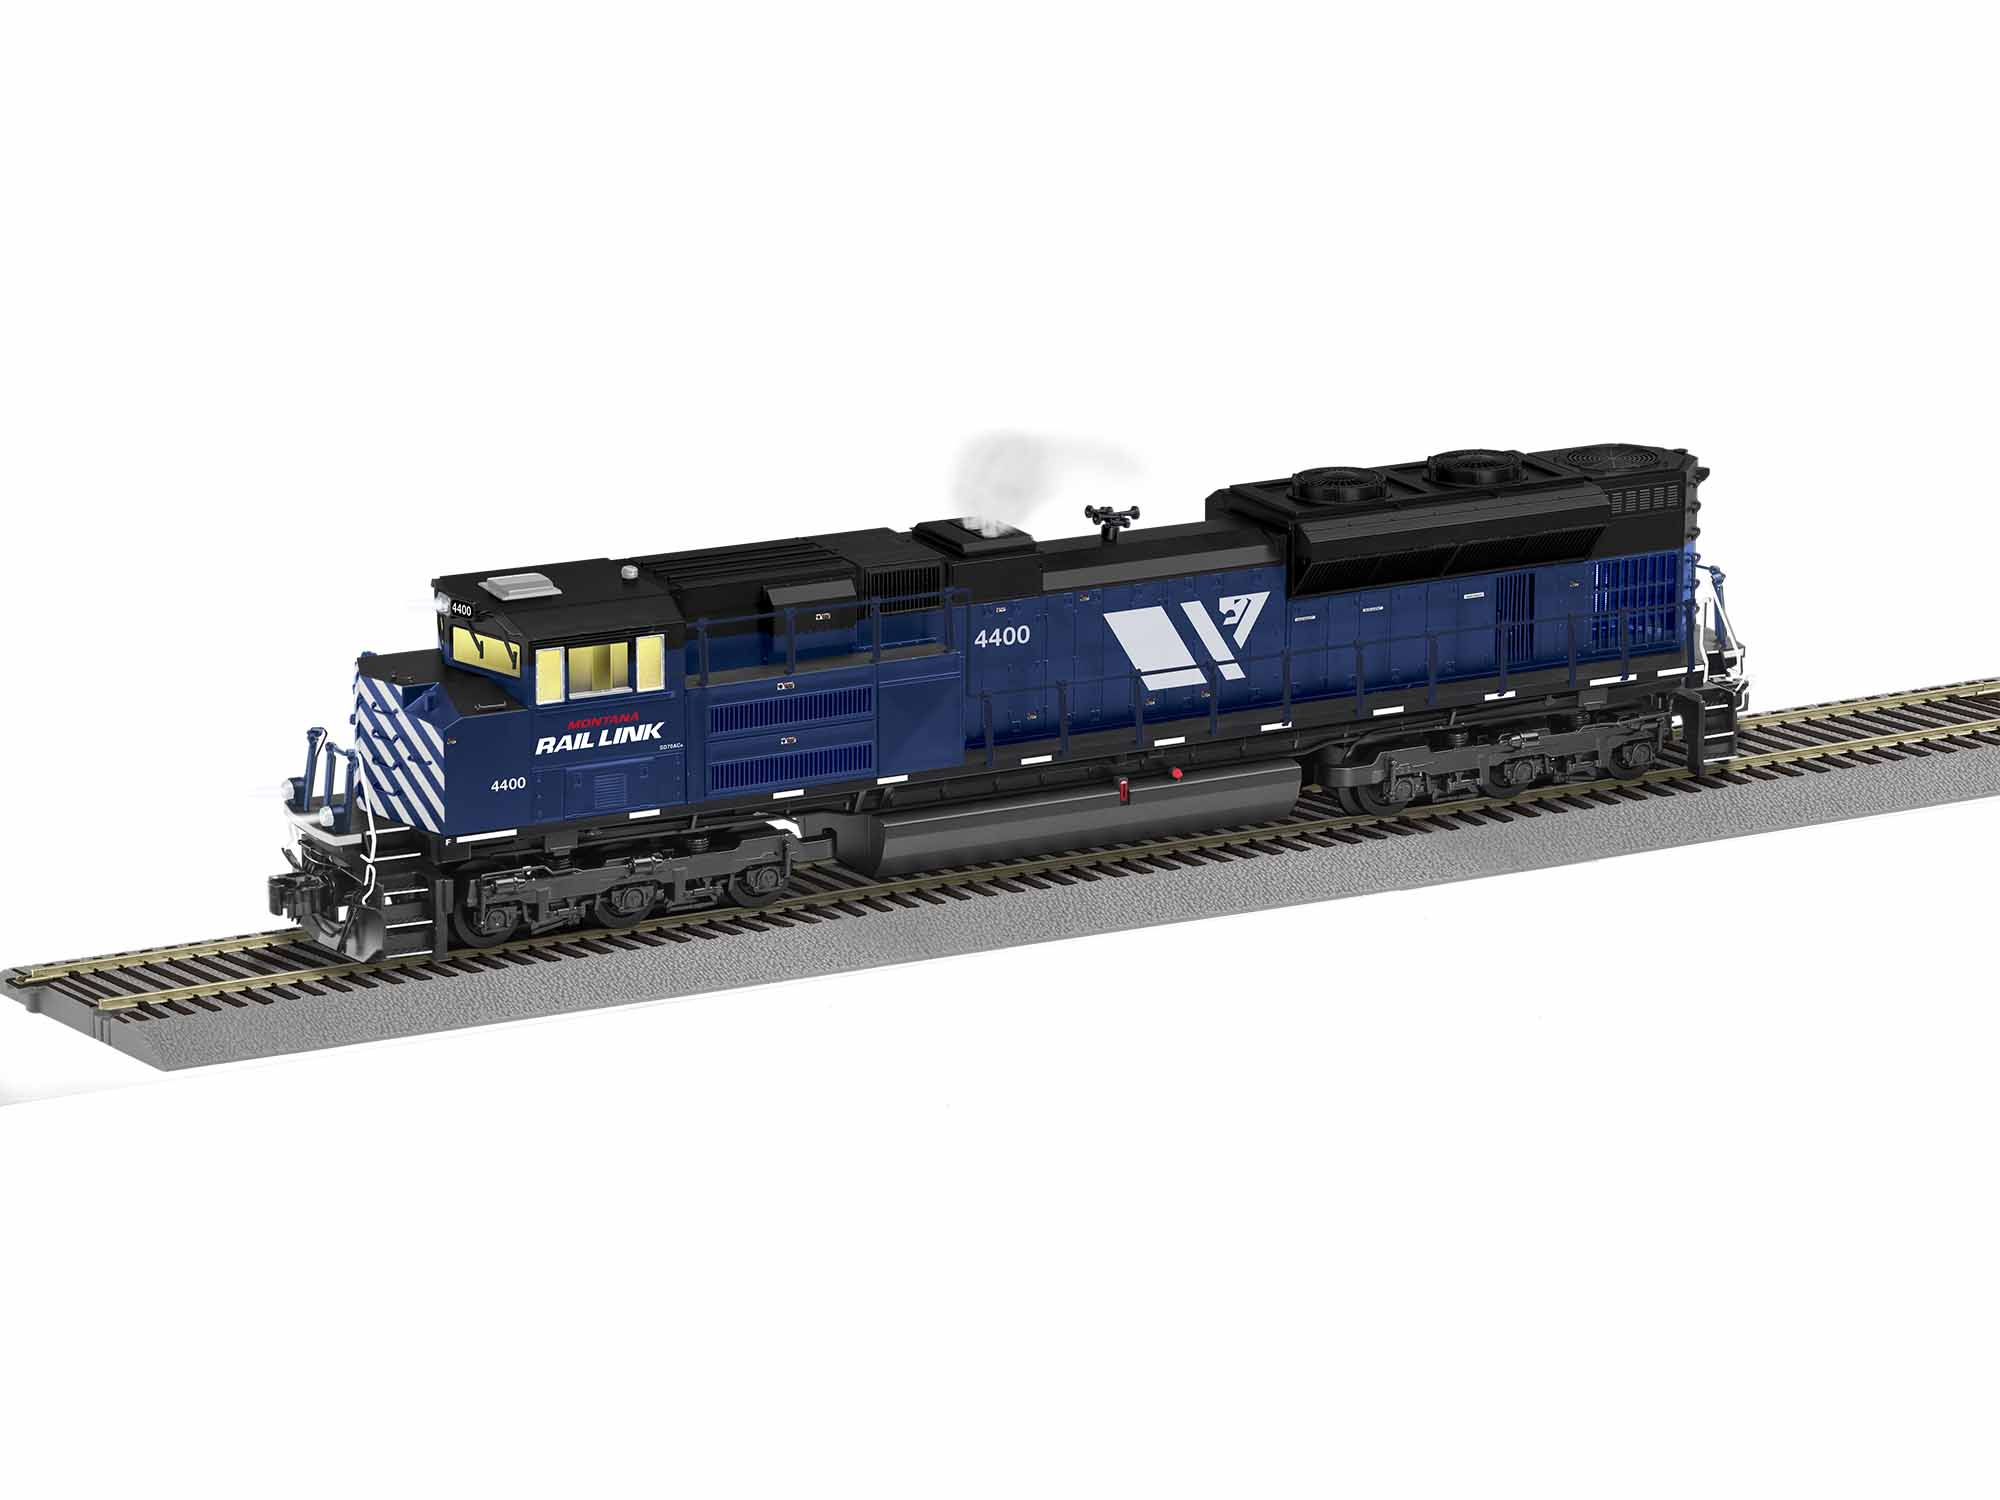 LNL1921121 Lionel S AF SD70ACe w/Legacy, MRL#4400 434-1921121